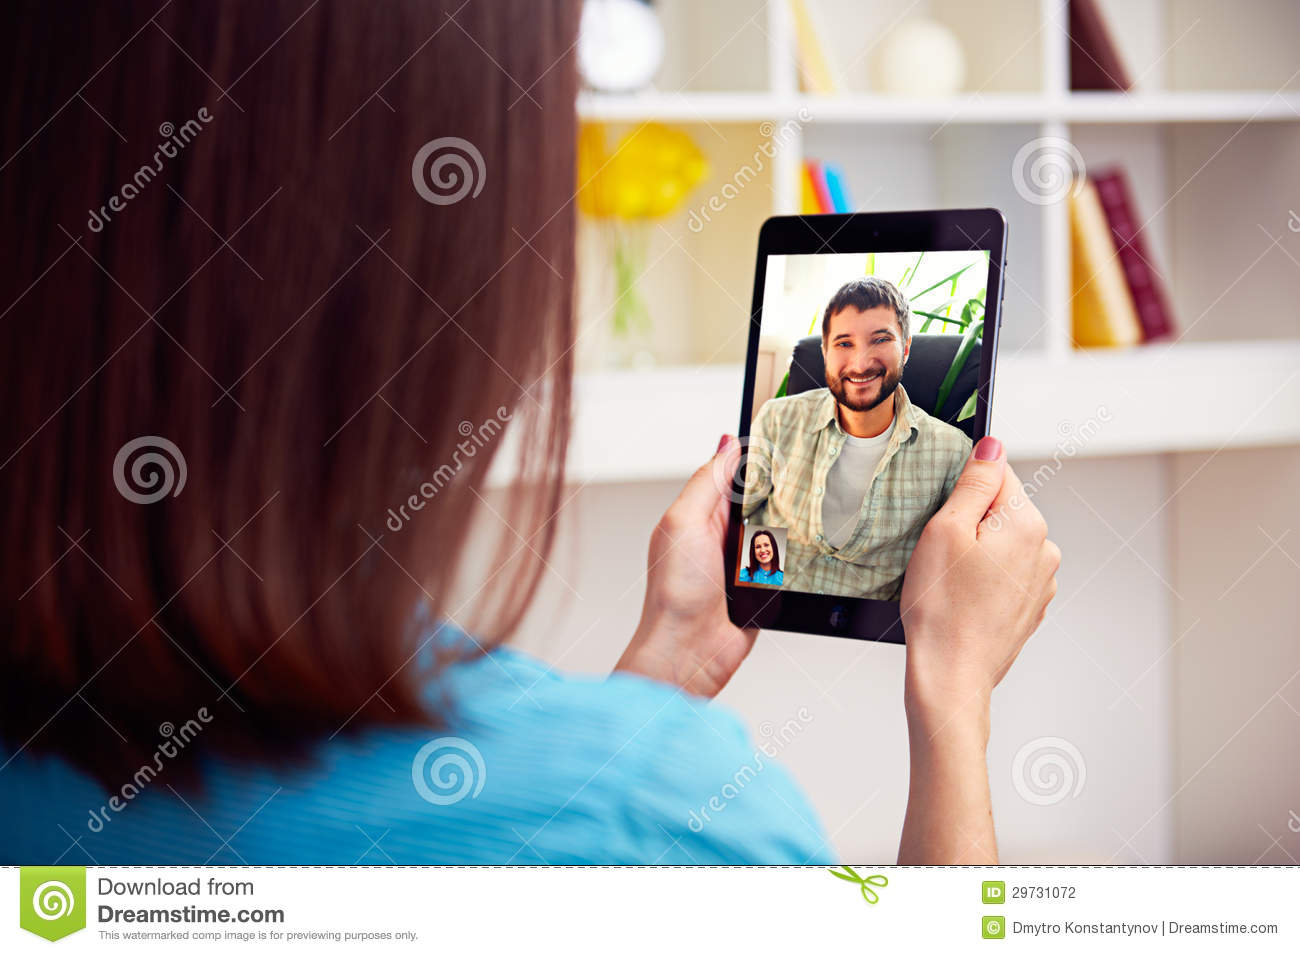 Couples video chat